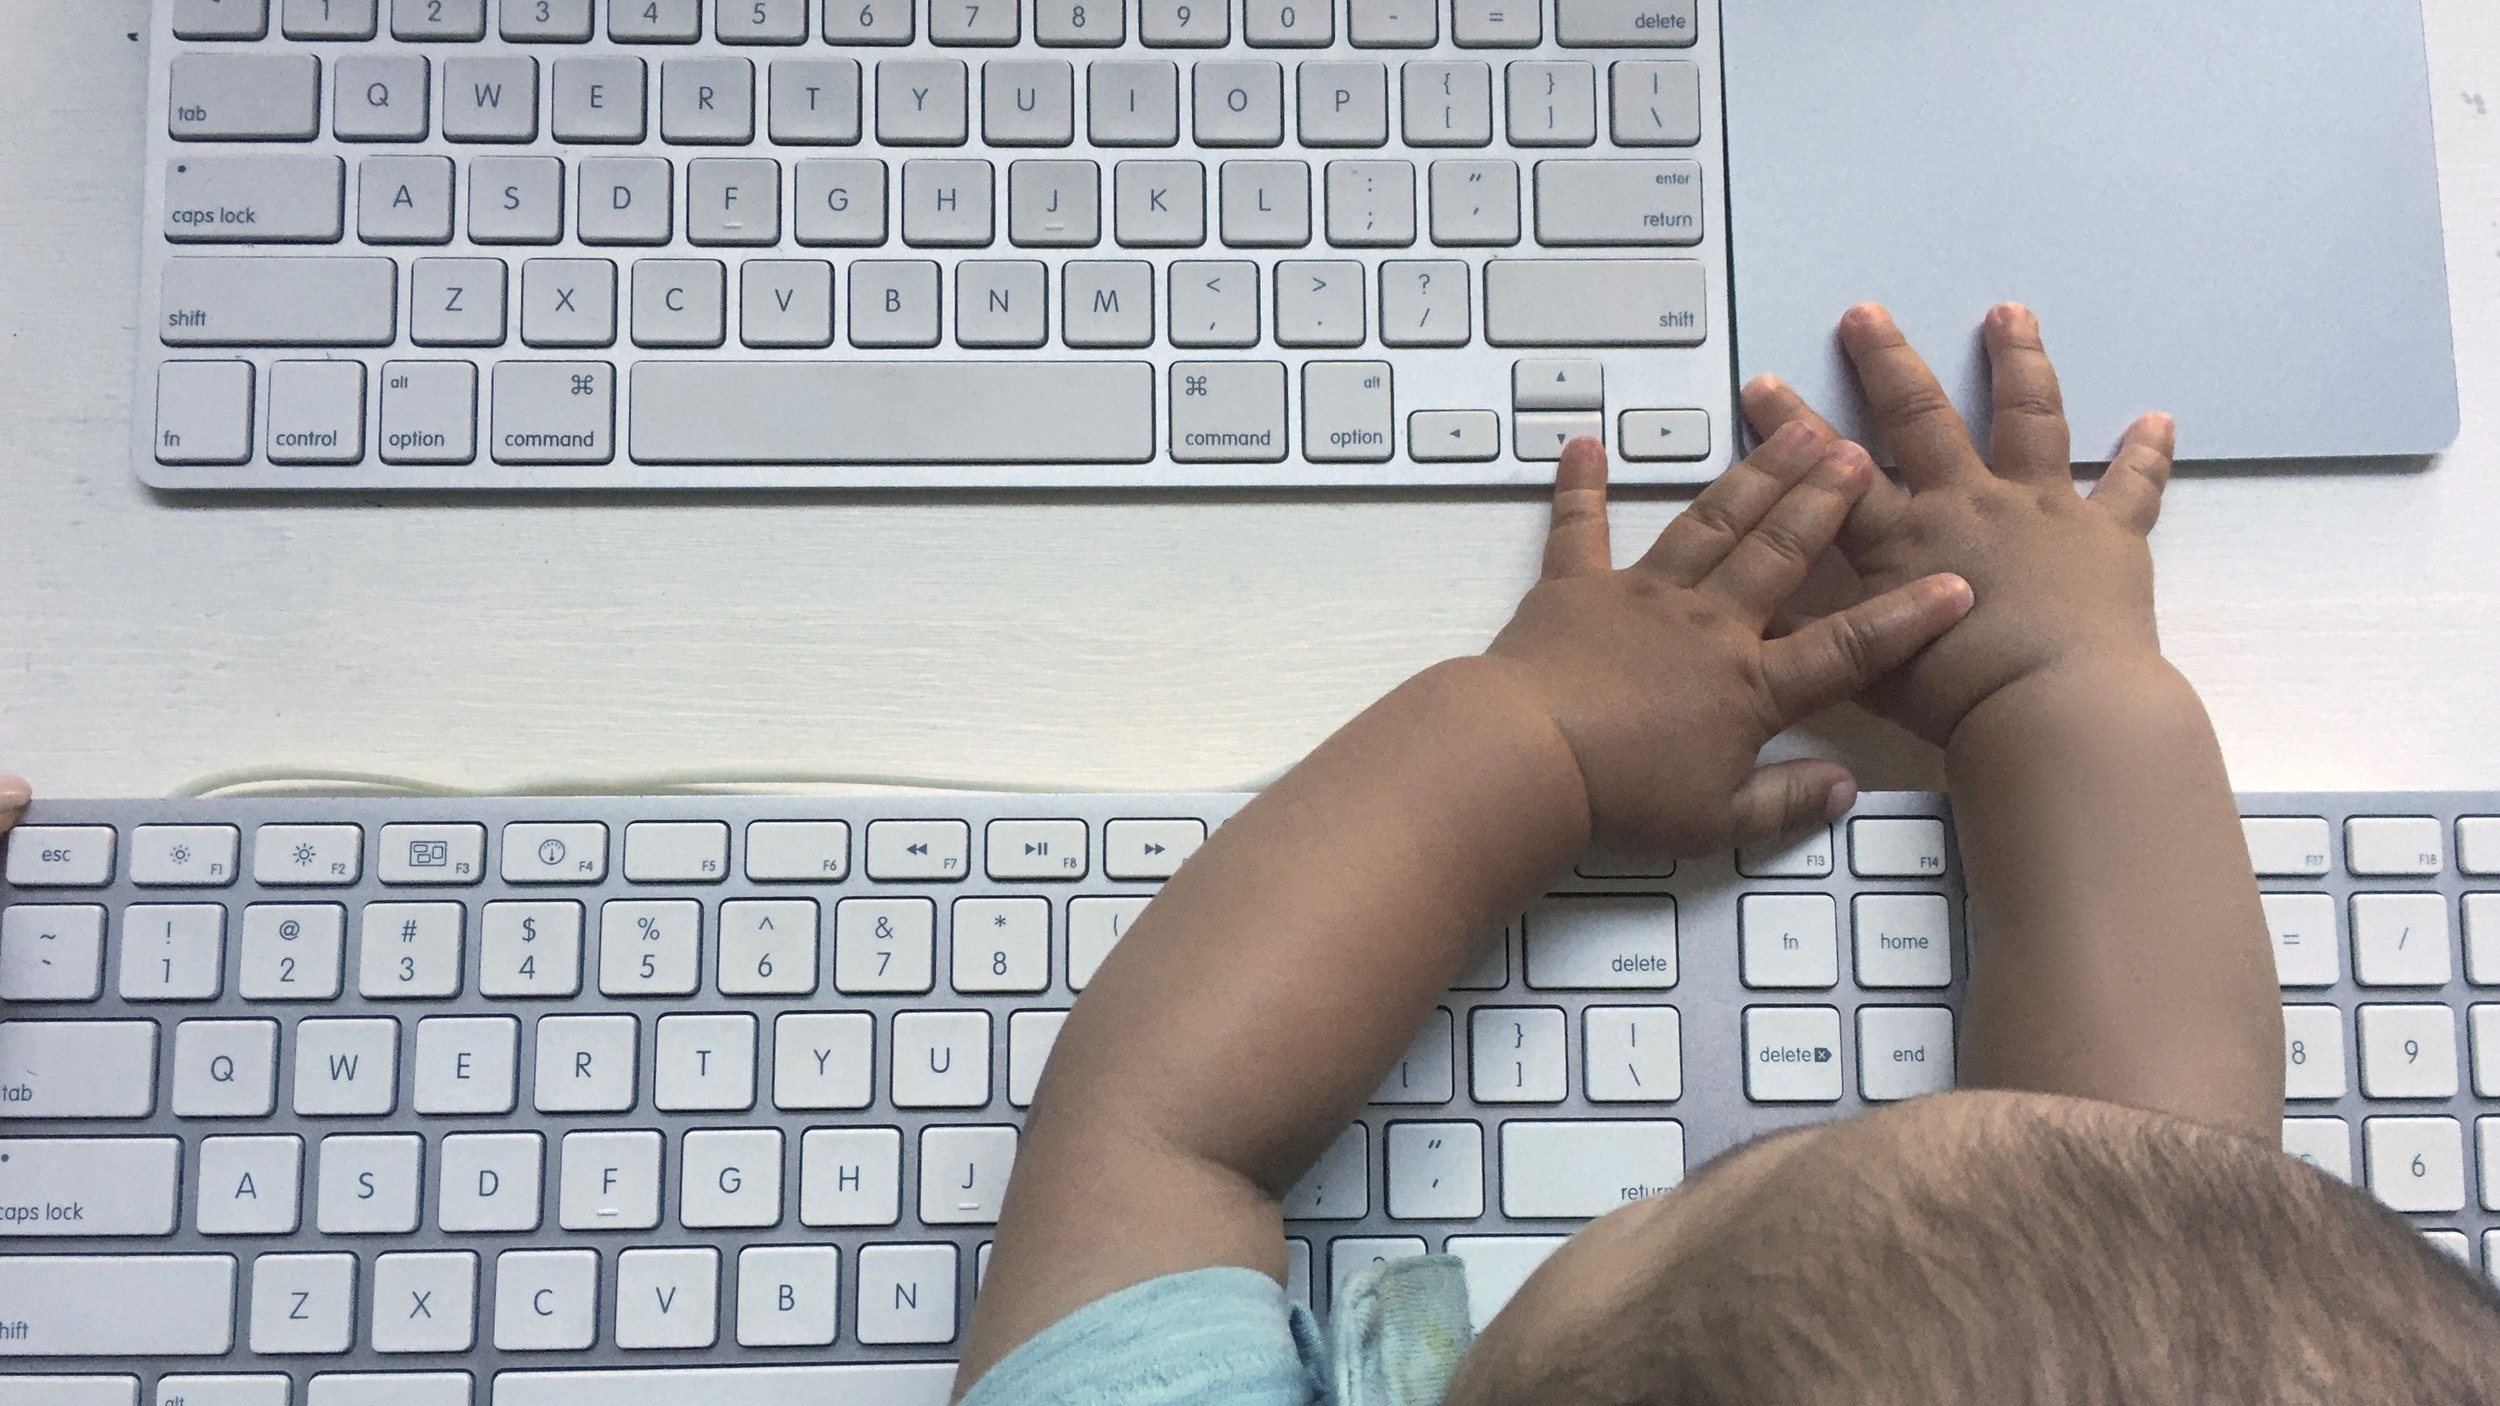 Above: Decoy keyboard to distract baby